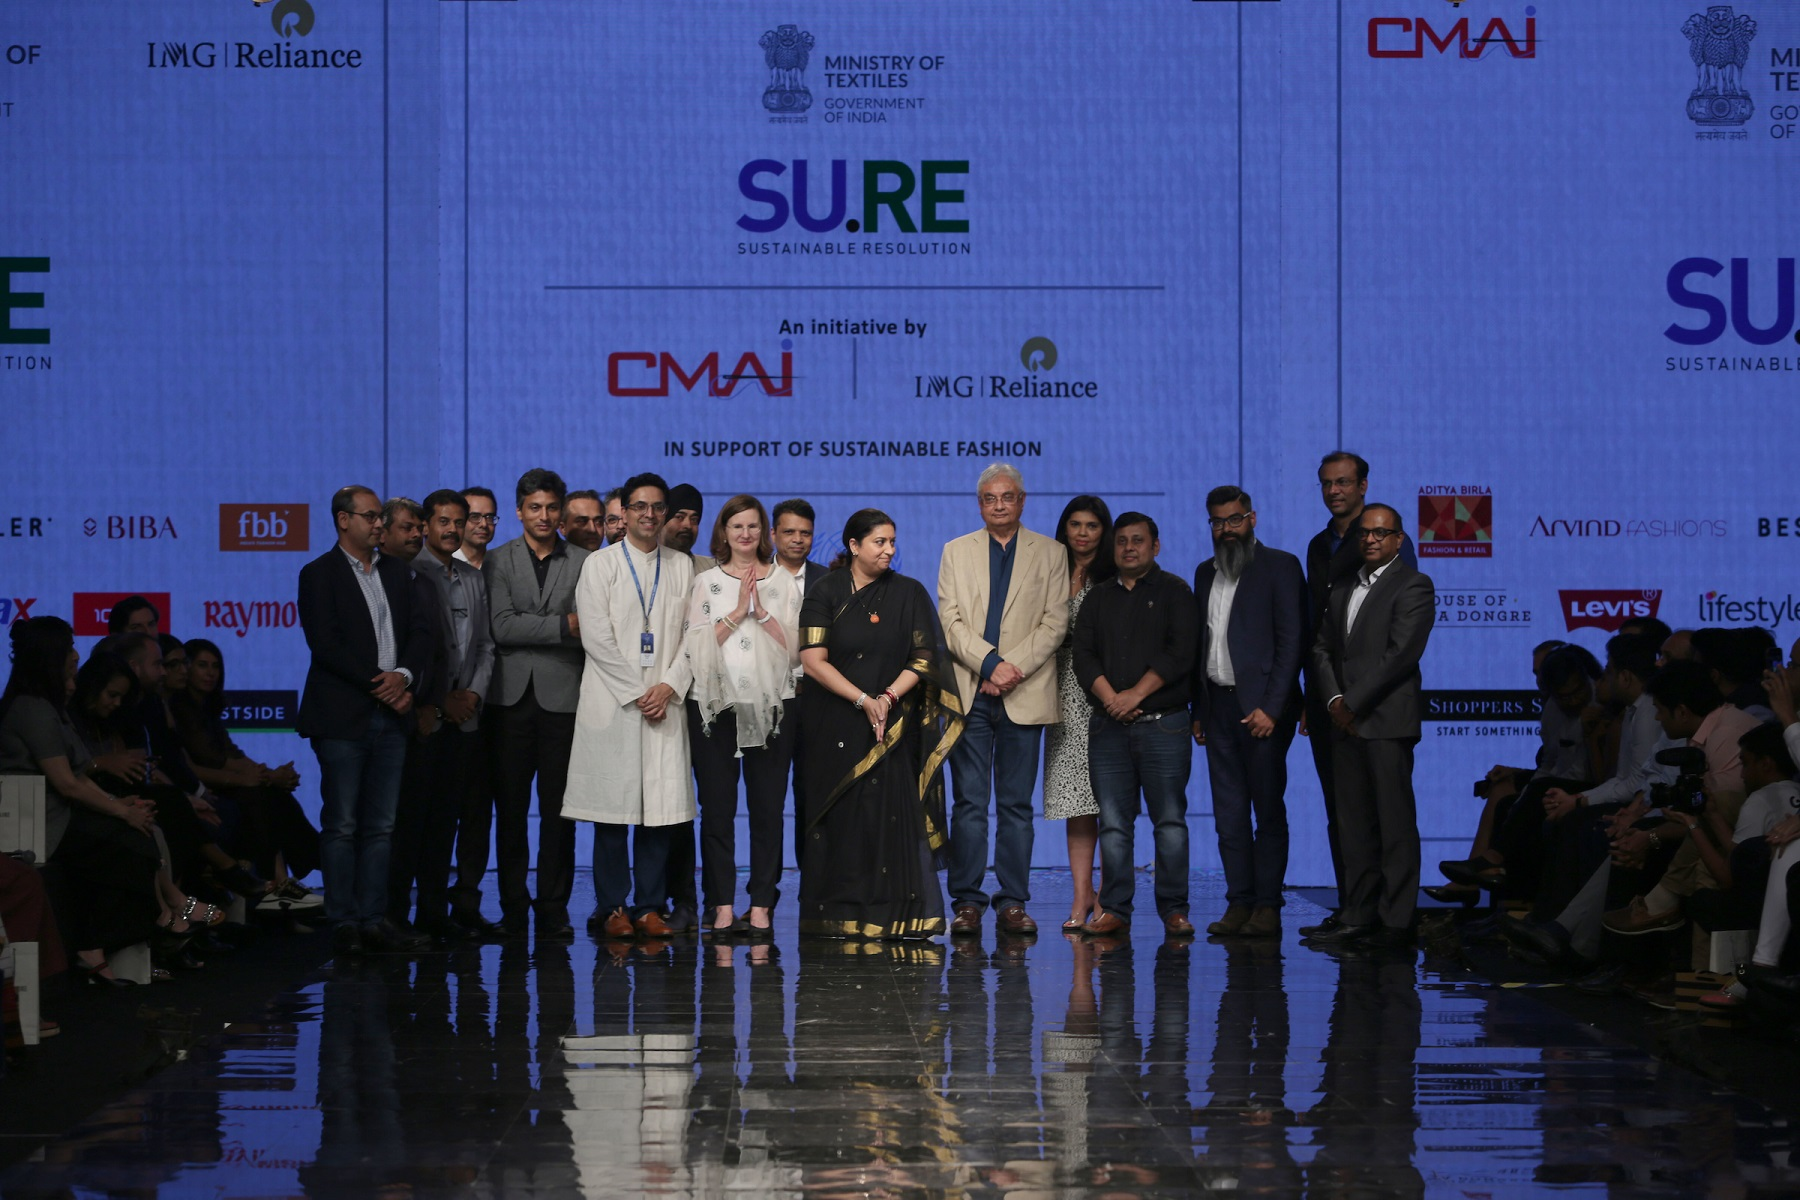 Union Textiles Minister launches Project SU.RE on Sustainable Fashion Day at Lakmé Fashion Week Winter/Festive 2019